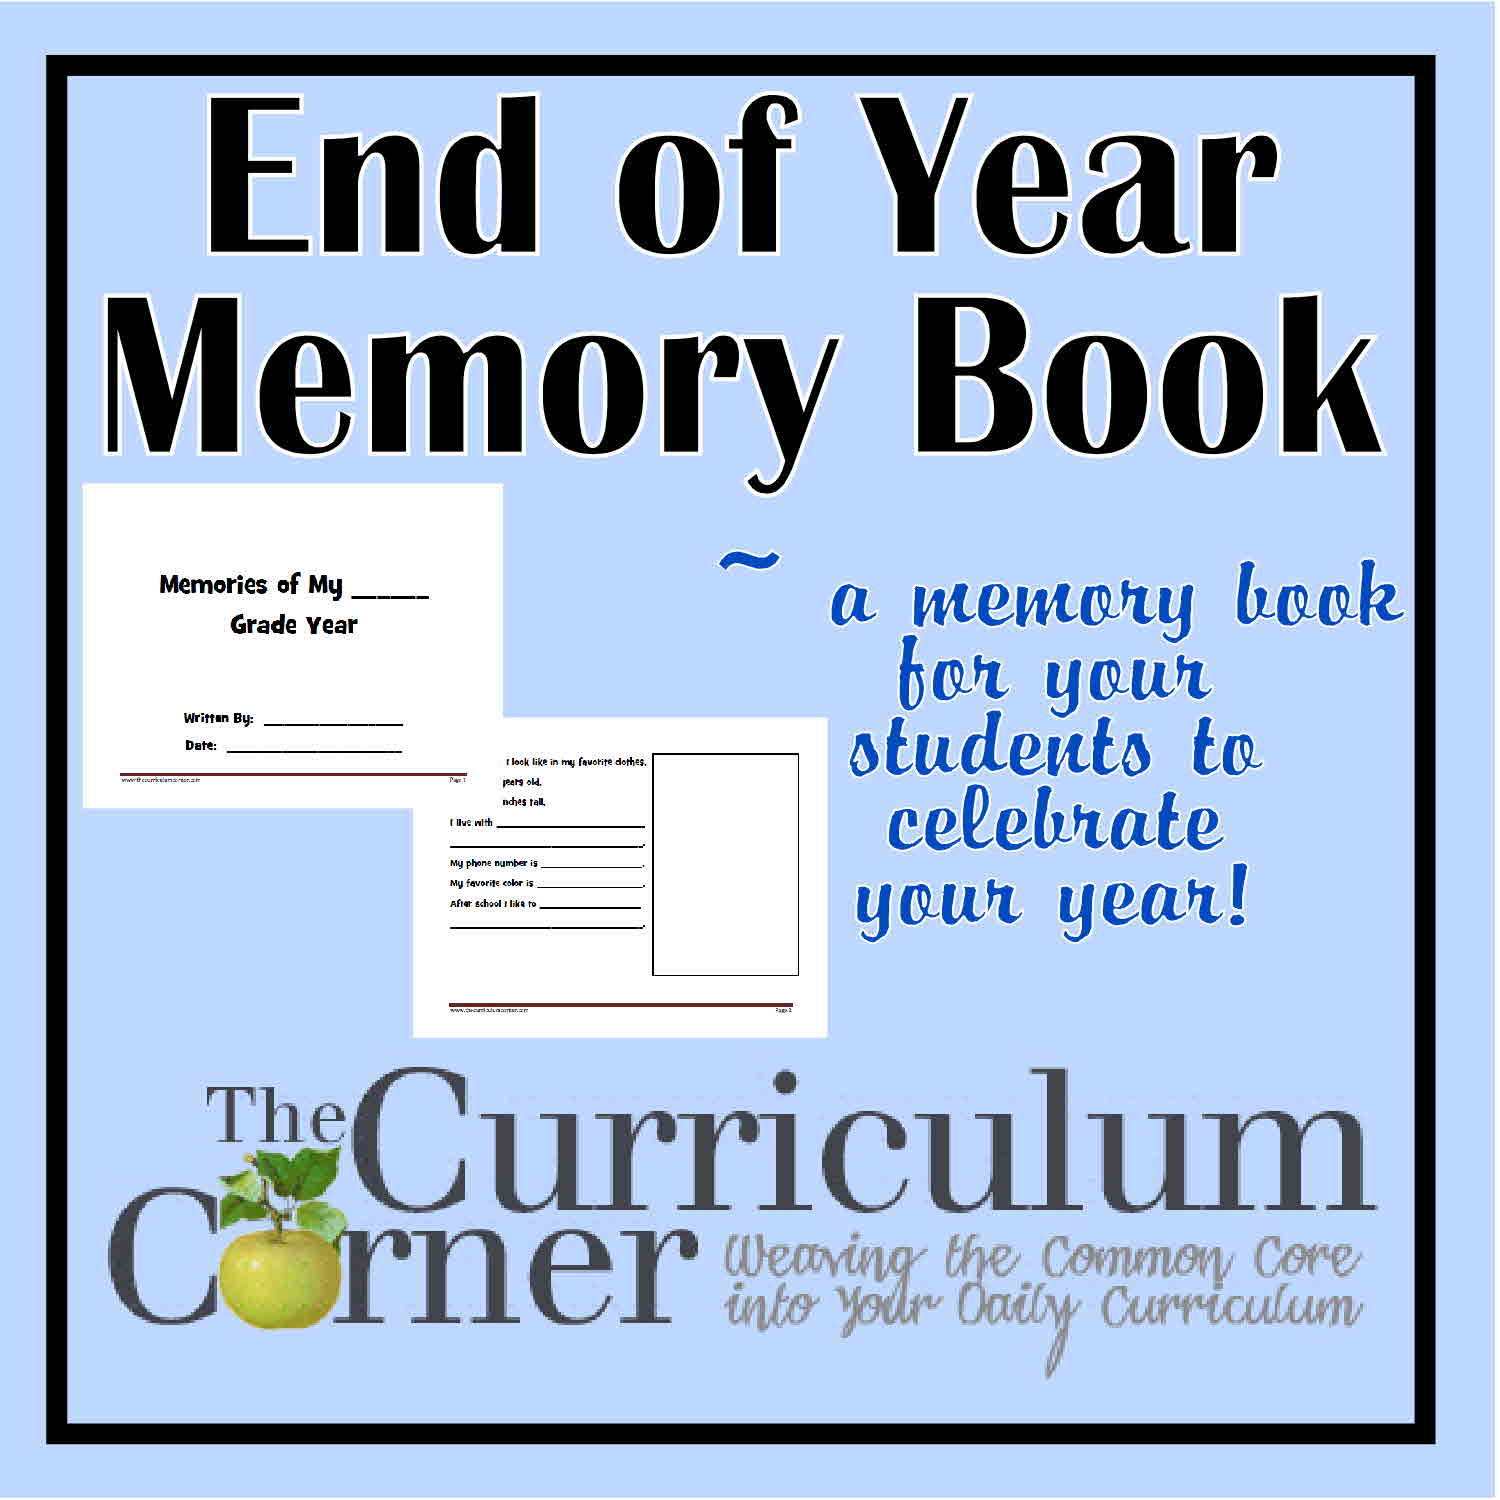 end of year memory book printable memory book for grade memory book 6533